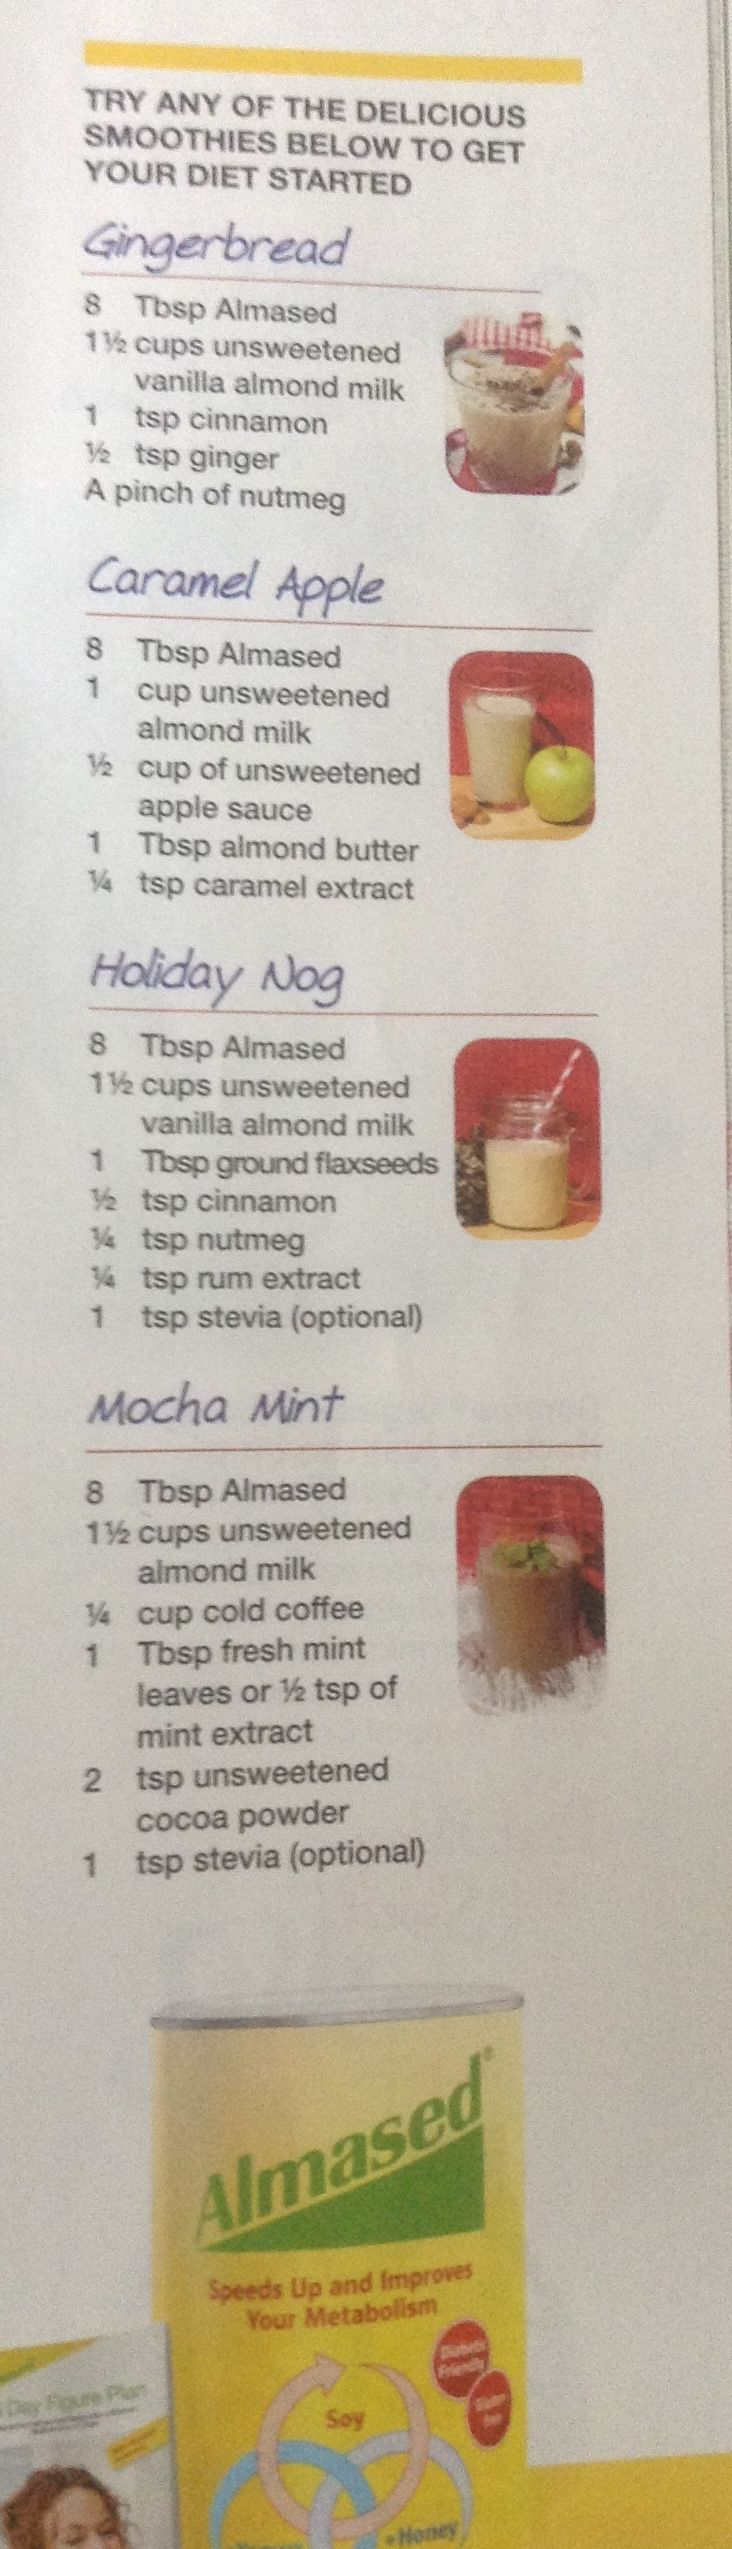 Almased smoothies for keeping on track during the holidays